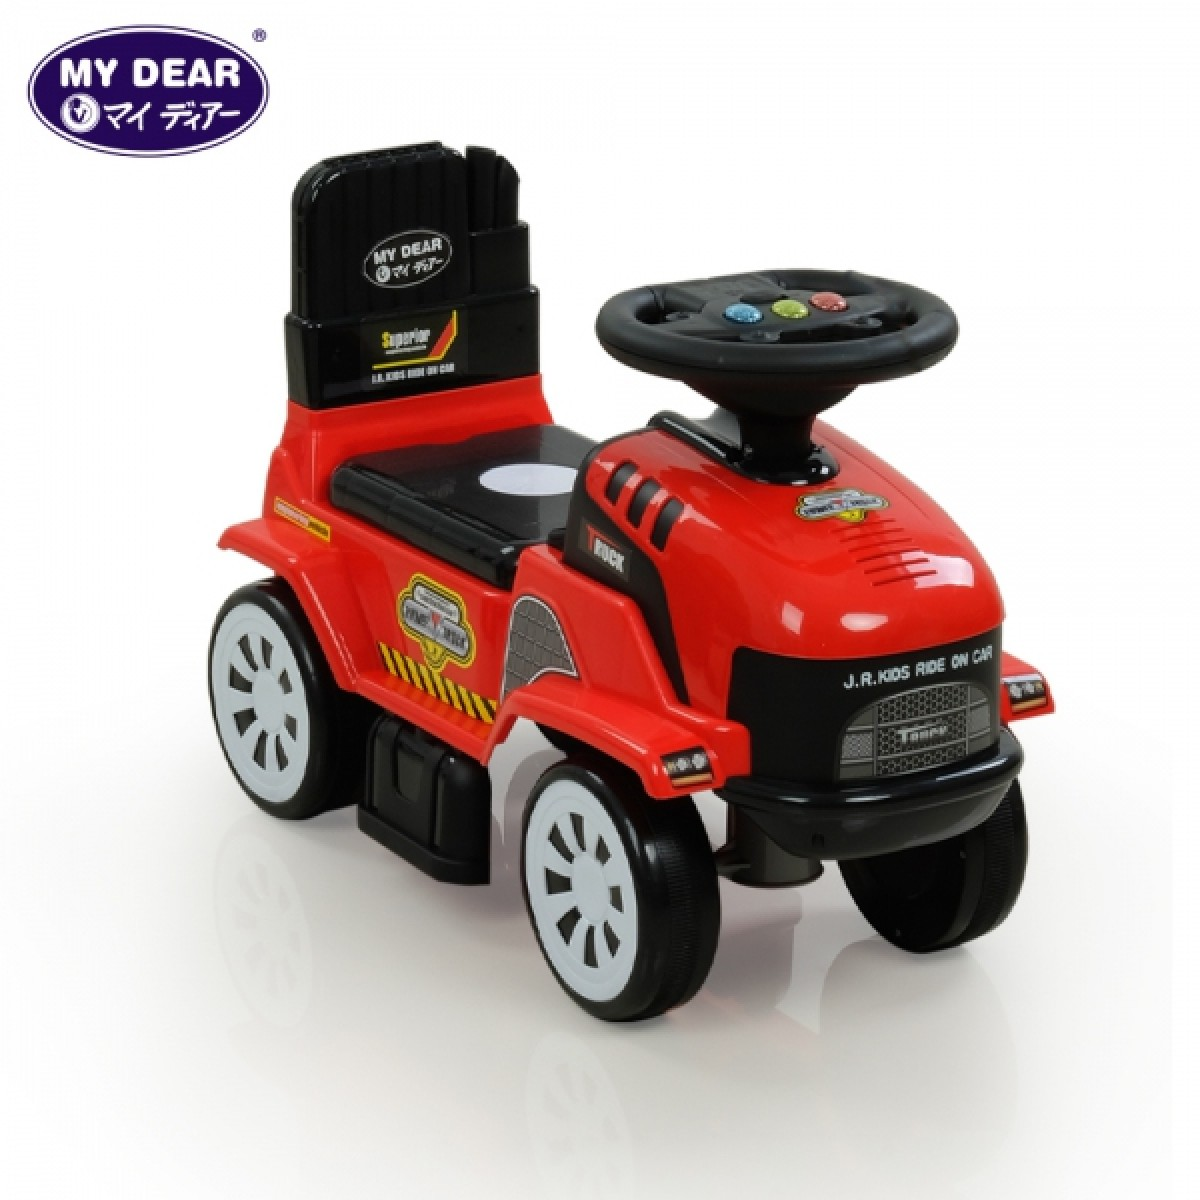 (JR913C-1) POWER TRUCK RIDE ON CAR WITH SOUND - Kico Baby Center